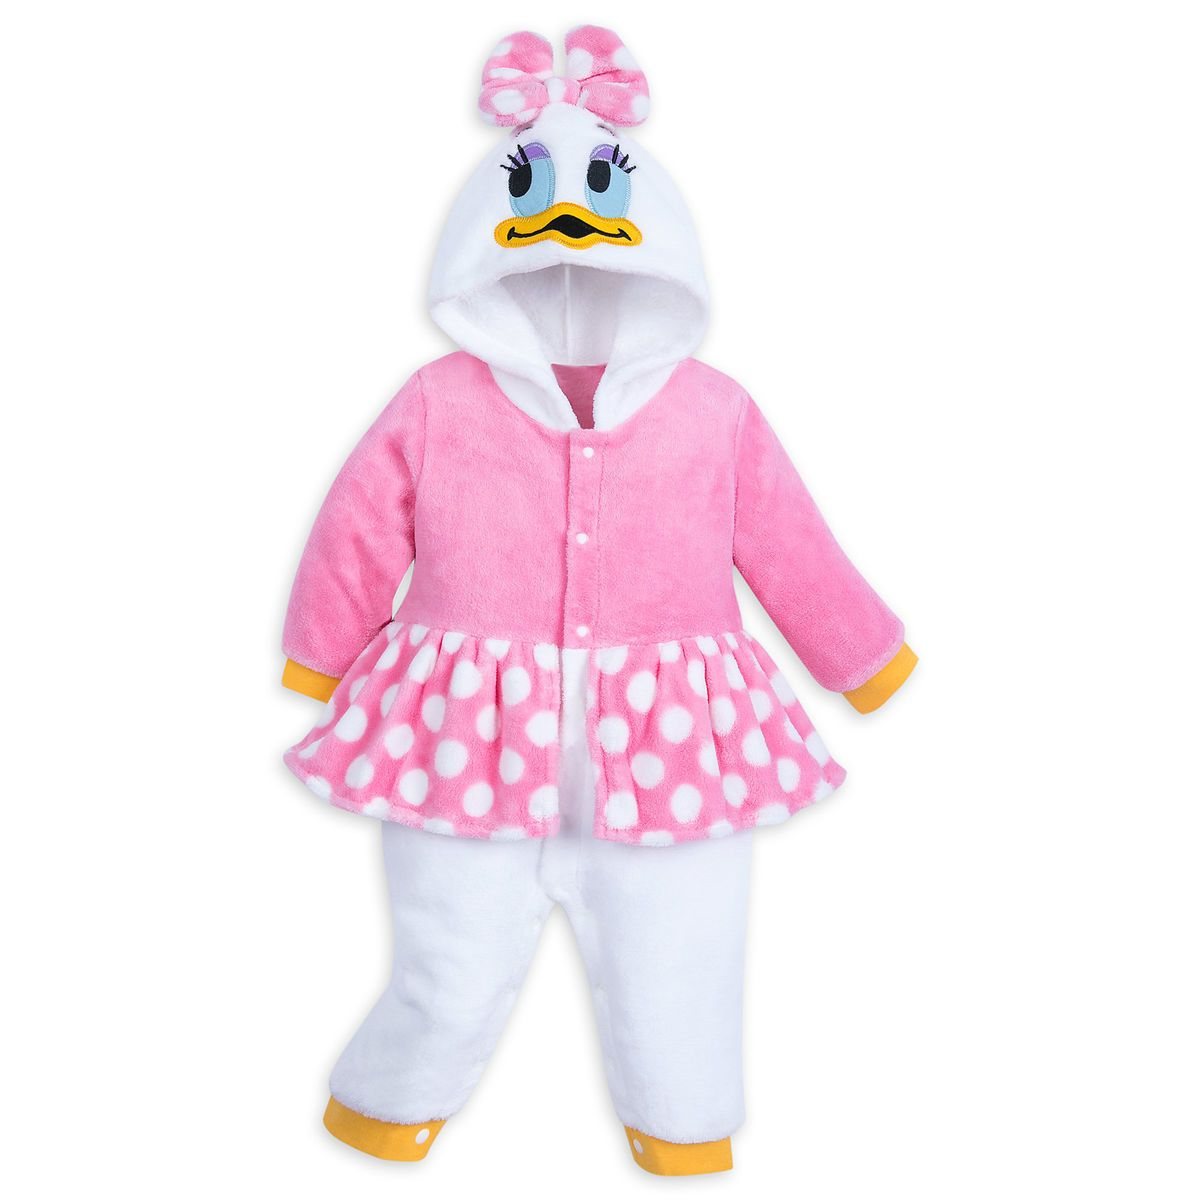 Daisy Duck Fleece Costume Romper For Baby Disney Clothes Kids